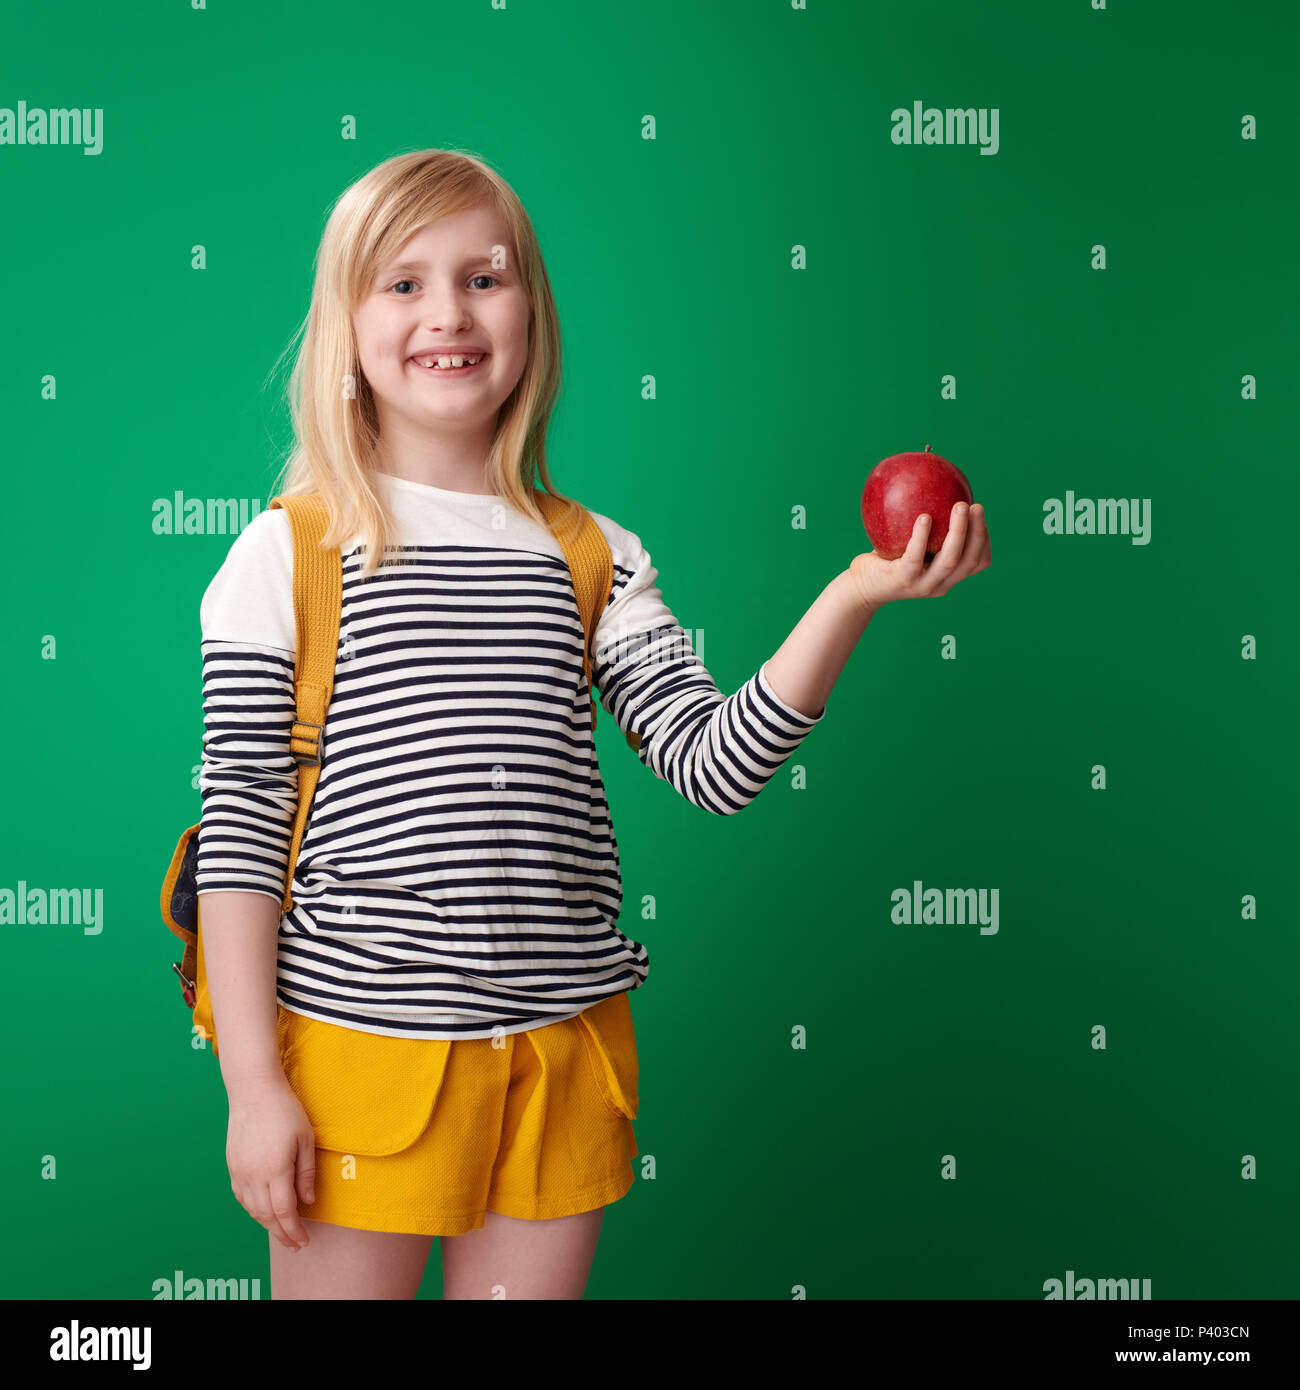 411dc05d2cac smiling school girl with backpack holding an apple against green background  - Stock Image